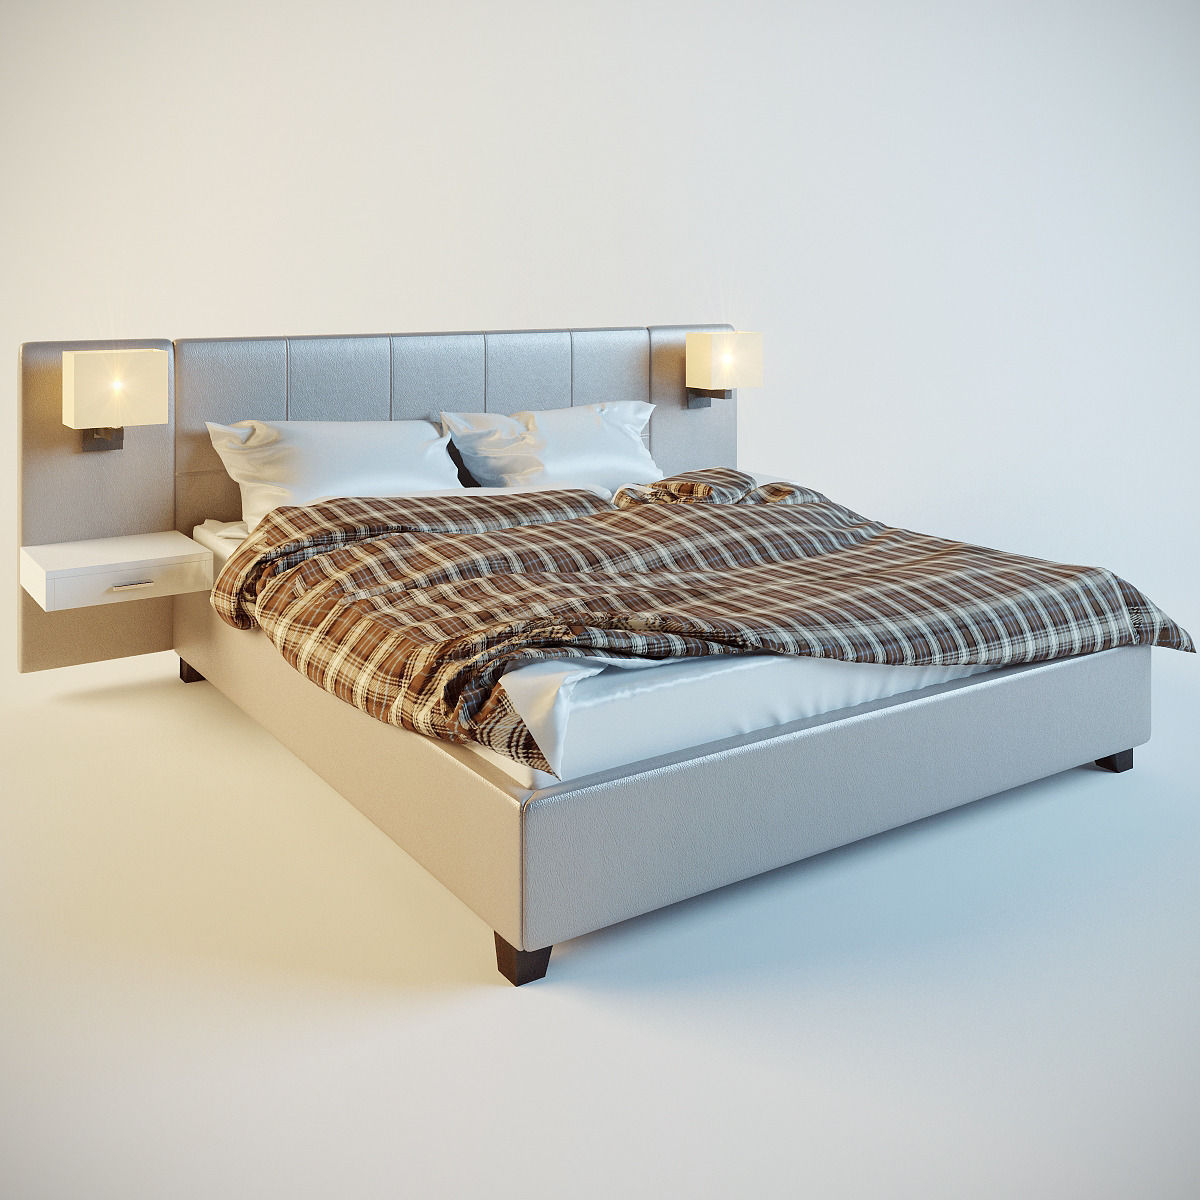 Bed for bedroom 3D Model .3ds - CGTrader.com on New Model Bedroom  id=47343